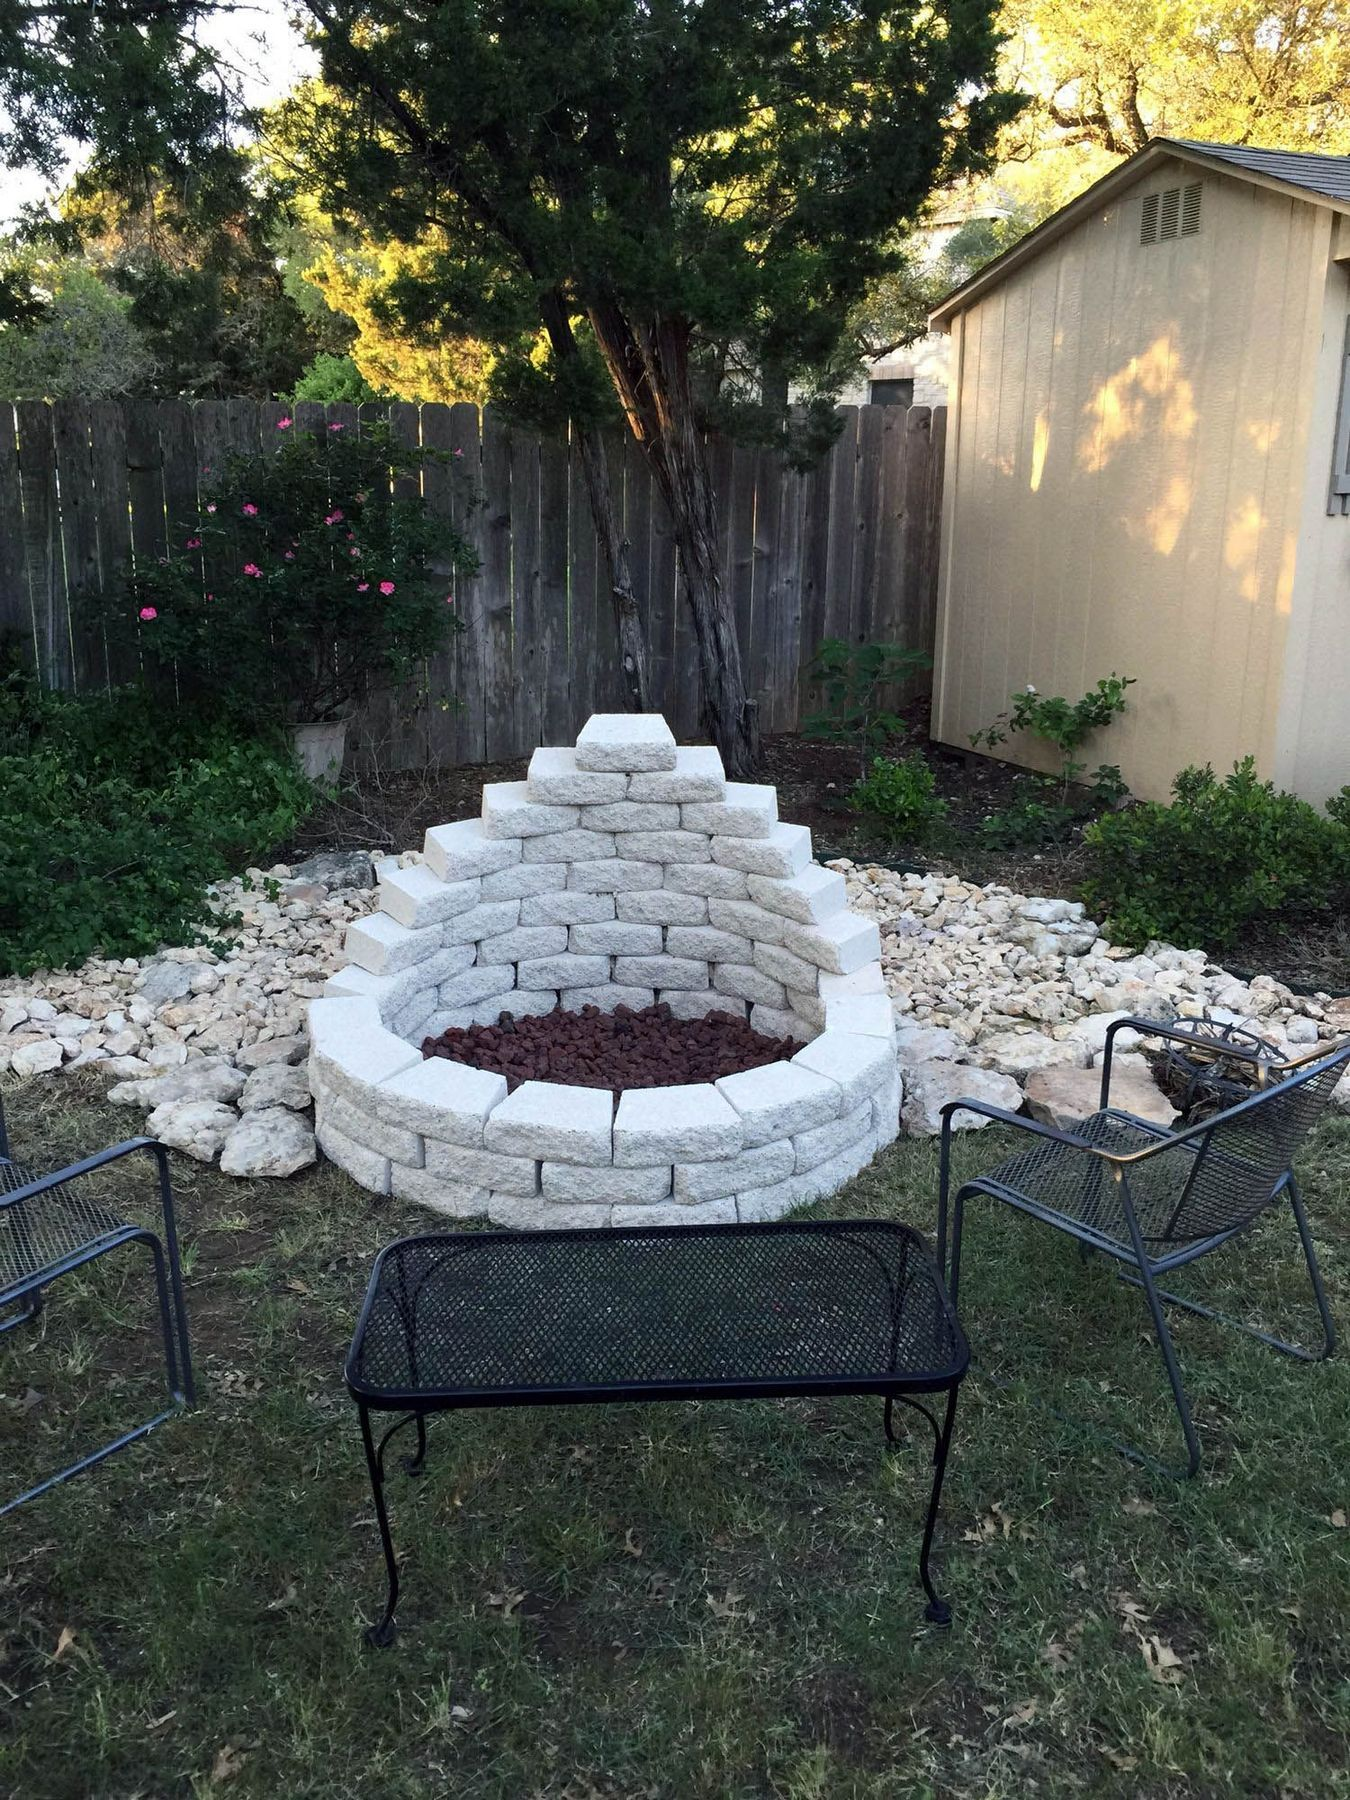 25 Easy and Simple DIY Fire Pit Ideas - Pajero is My Dream #firepitideas